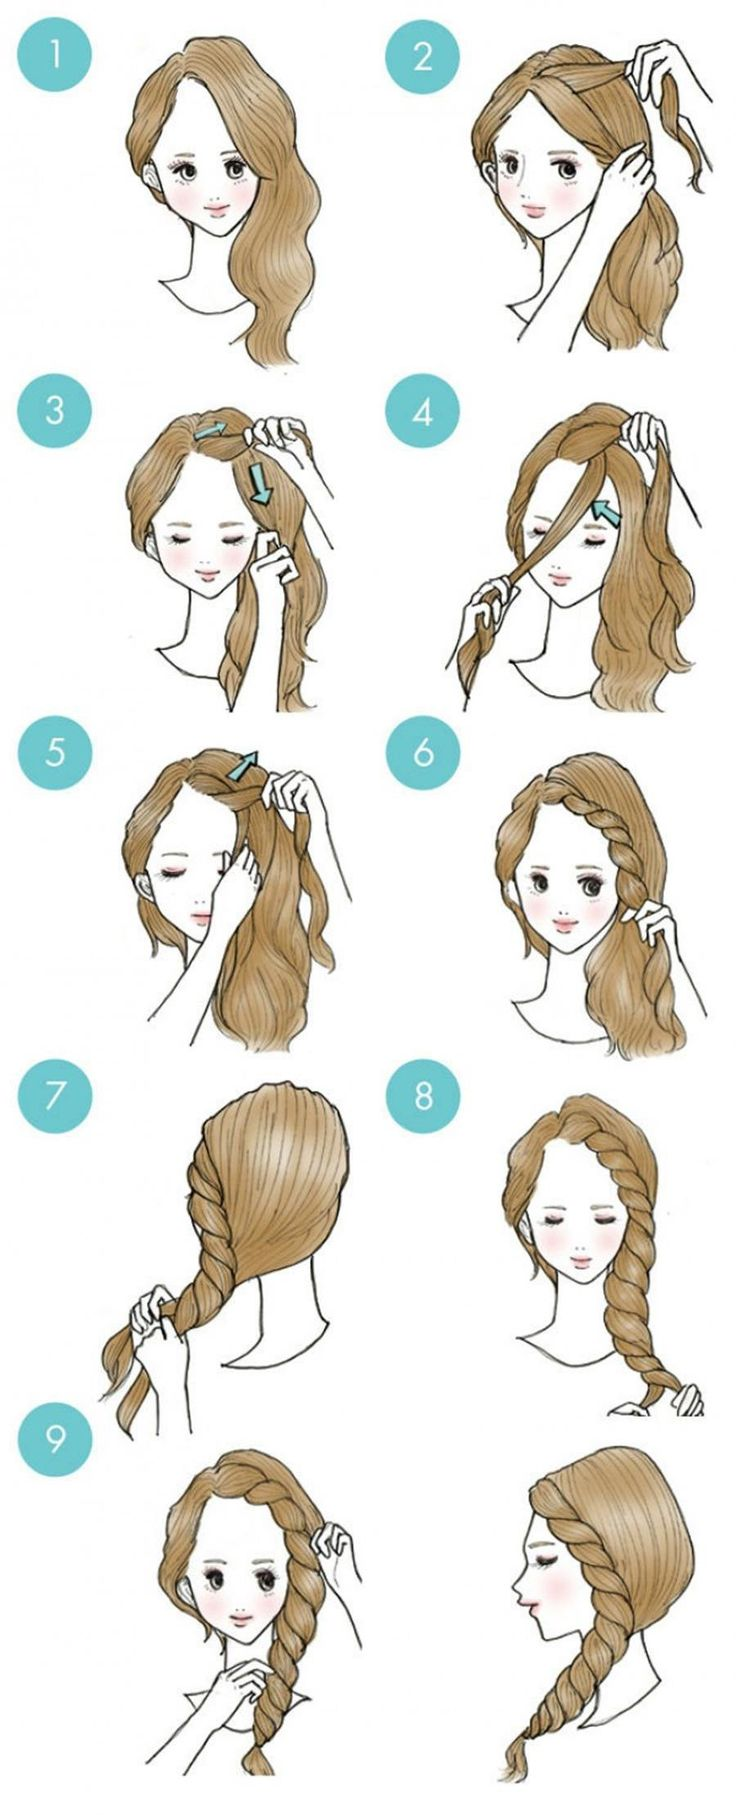 20 best peinados images on pinterest | stylish hairstyles